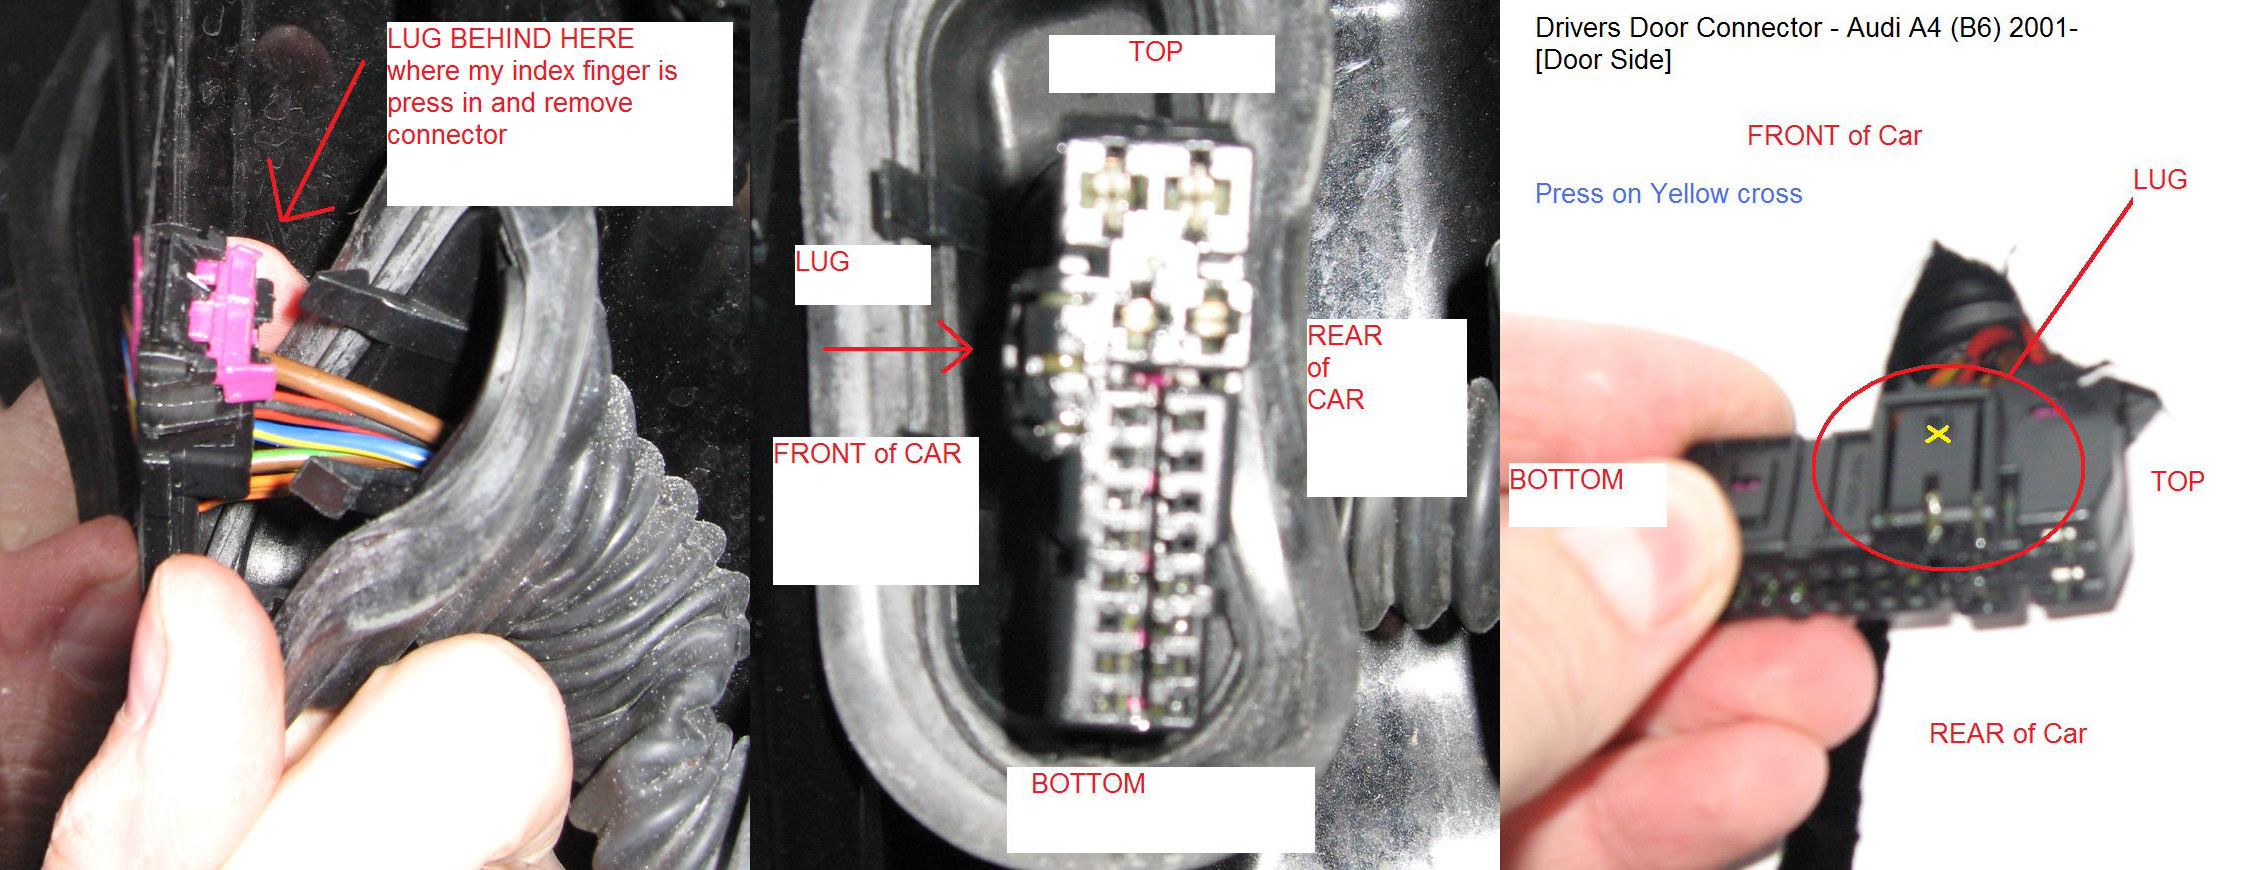 How Do I Unplug Drivers Door Wiring Loom From The Car Body Audi 2009 Q7 Diagram Img